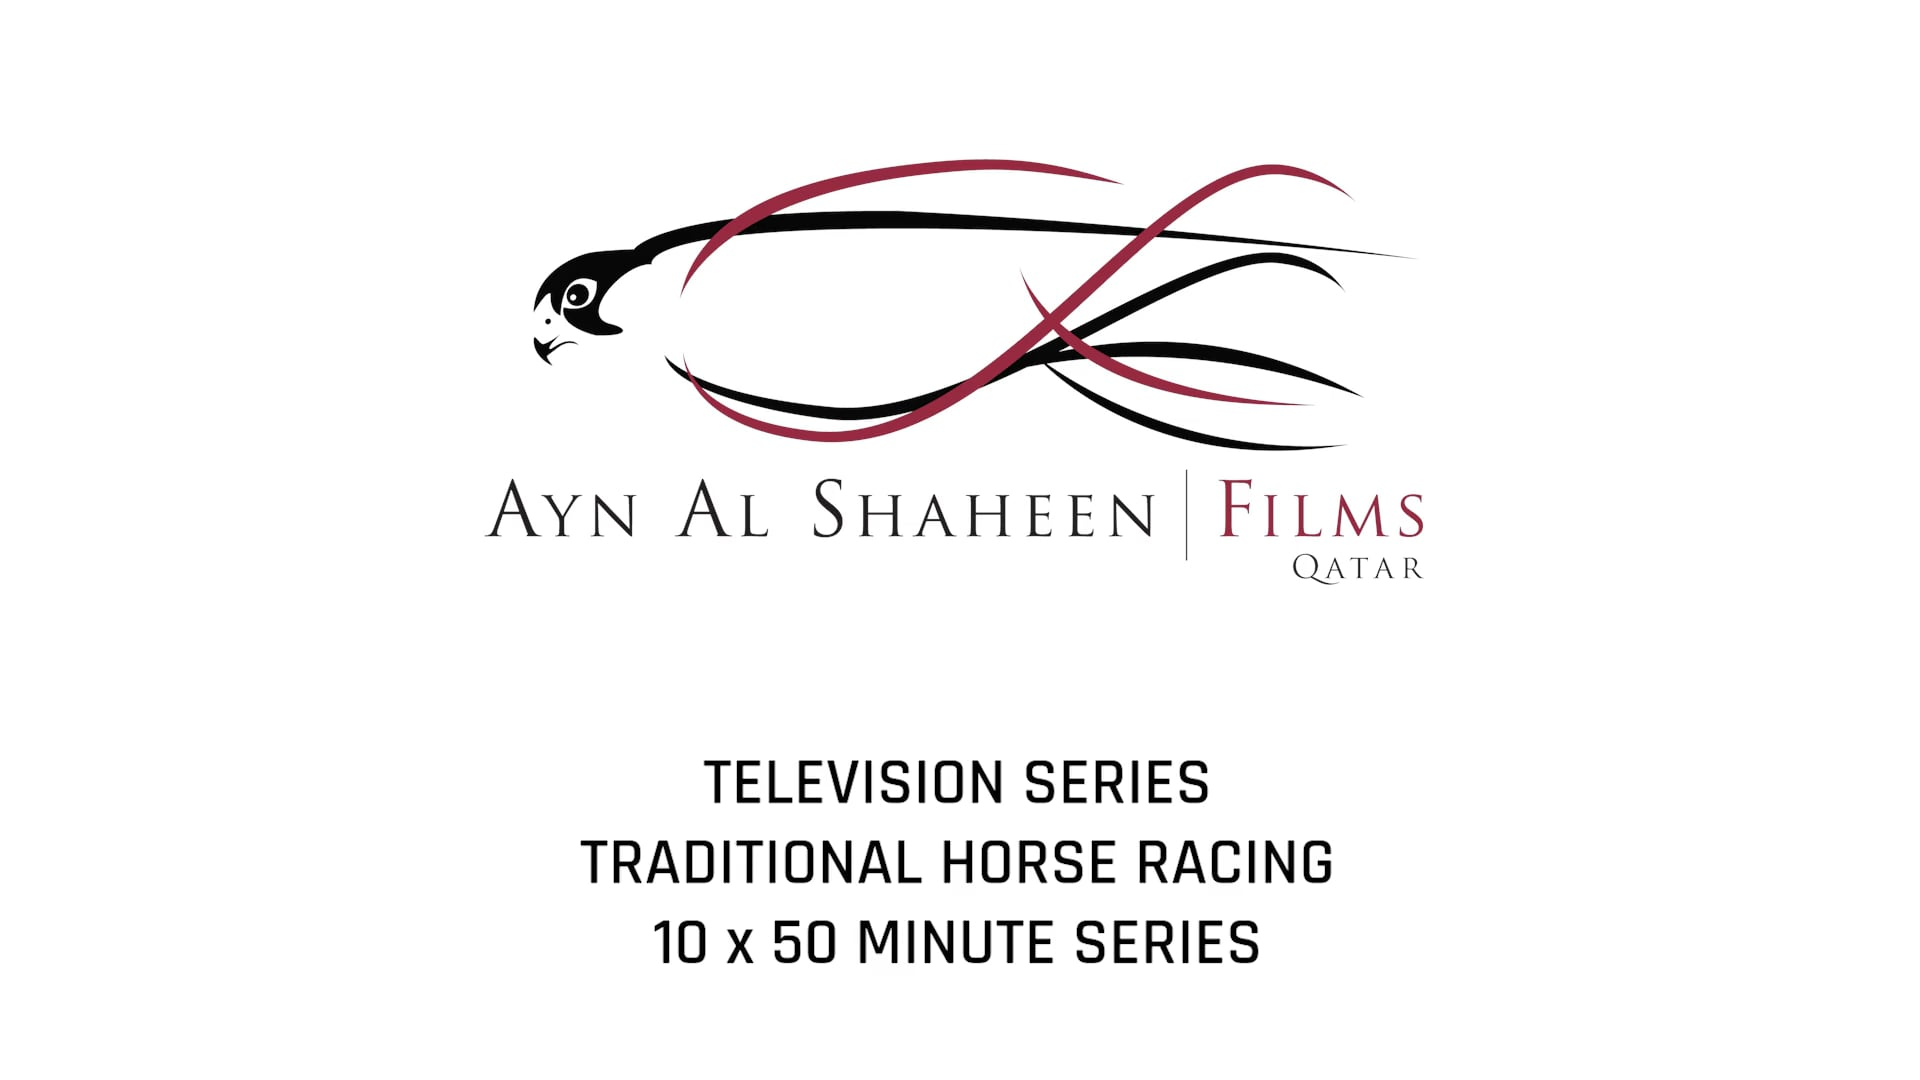 TRADITIONAL HORSE RACING TELEVISION SERIES ASF